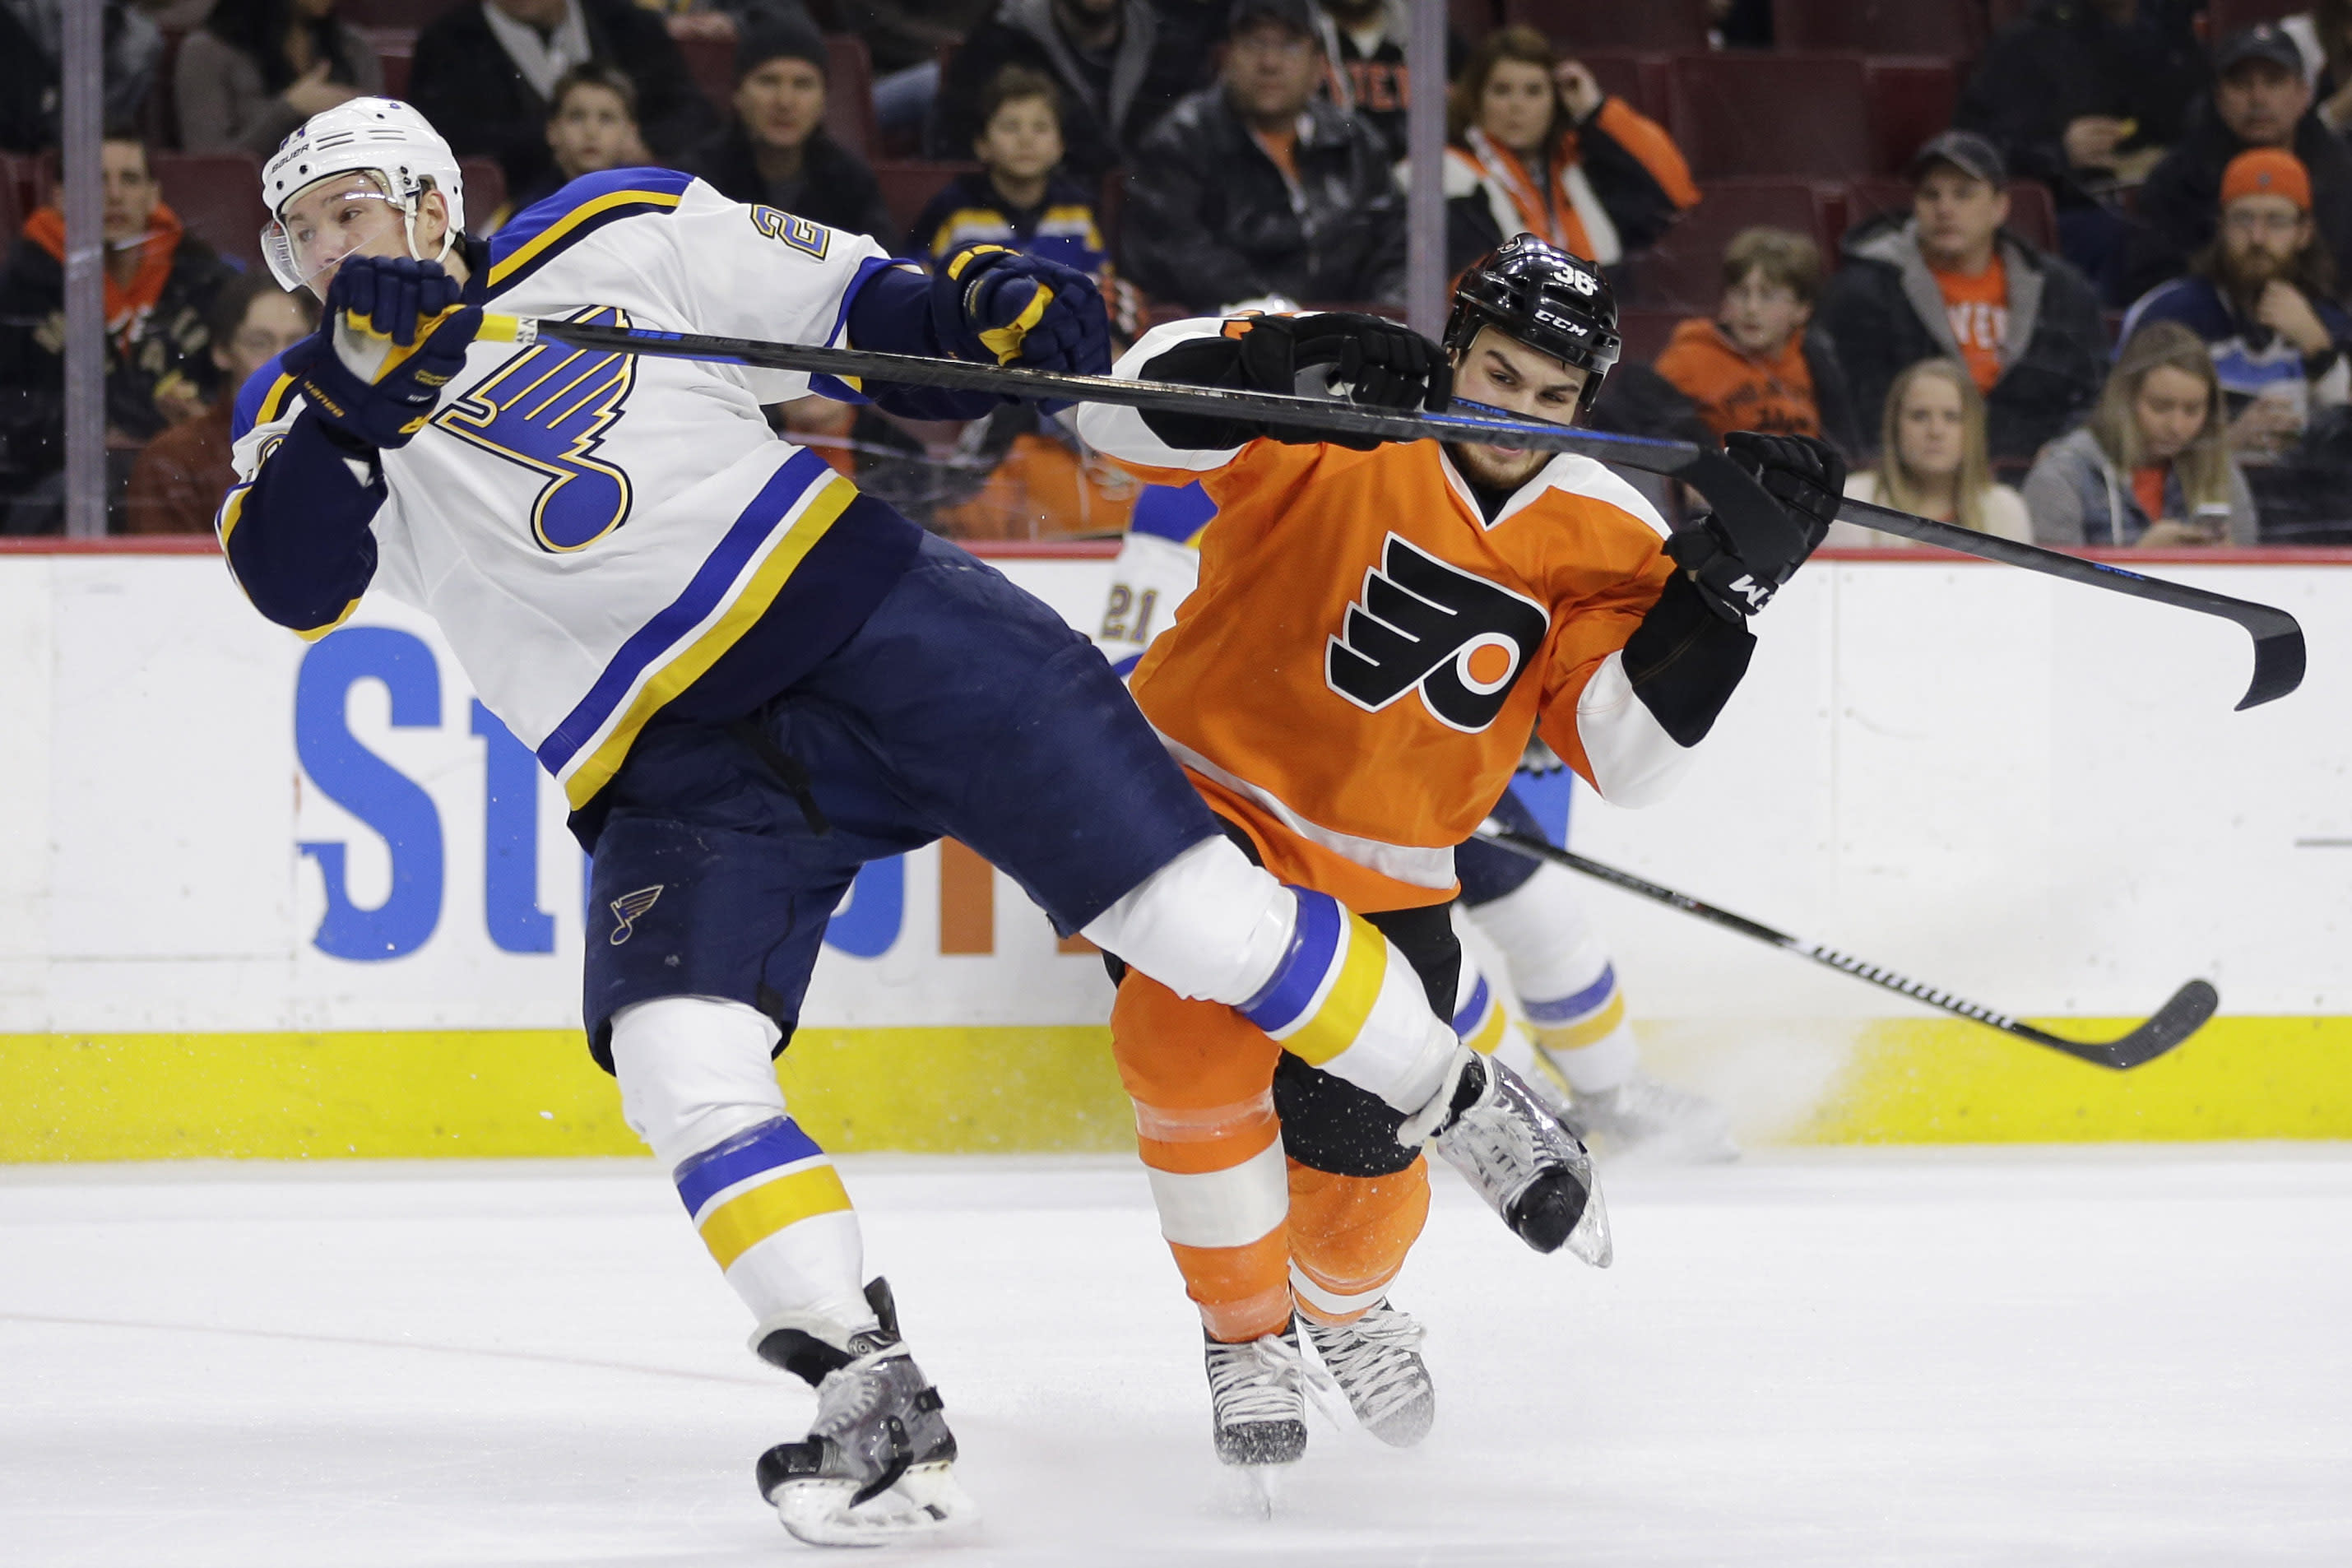 Flyers score 3 goals in 3rd period, top St. Louis 3-1